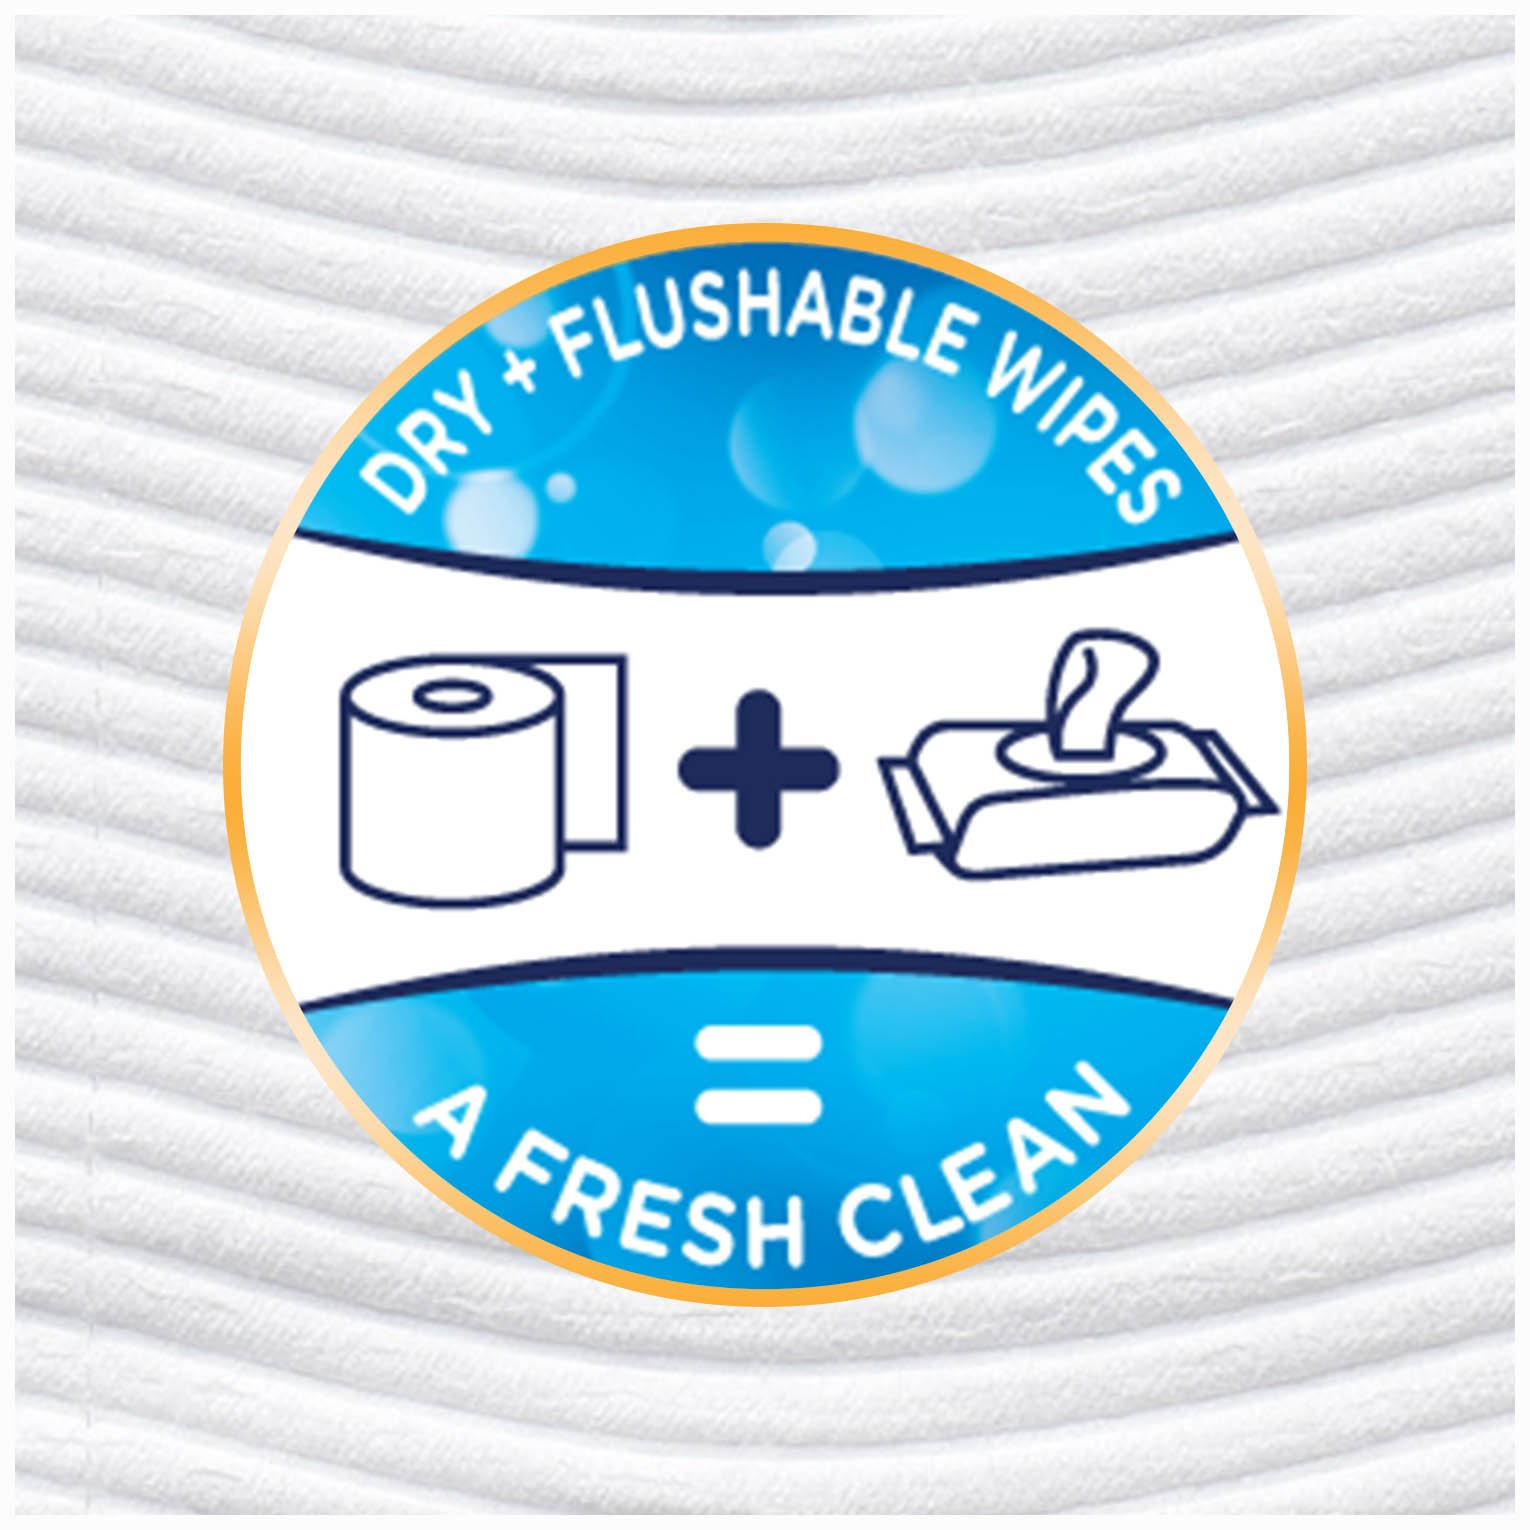 Cottonelle FreshCare Flushable Wipes, 336 Flushable Wet Wipes (Eight 42-Count Resealable Soft Packs) (Packaging May Vary), Lightly Scented by Cottonelle (Image #6)